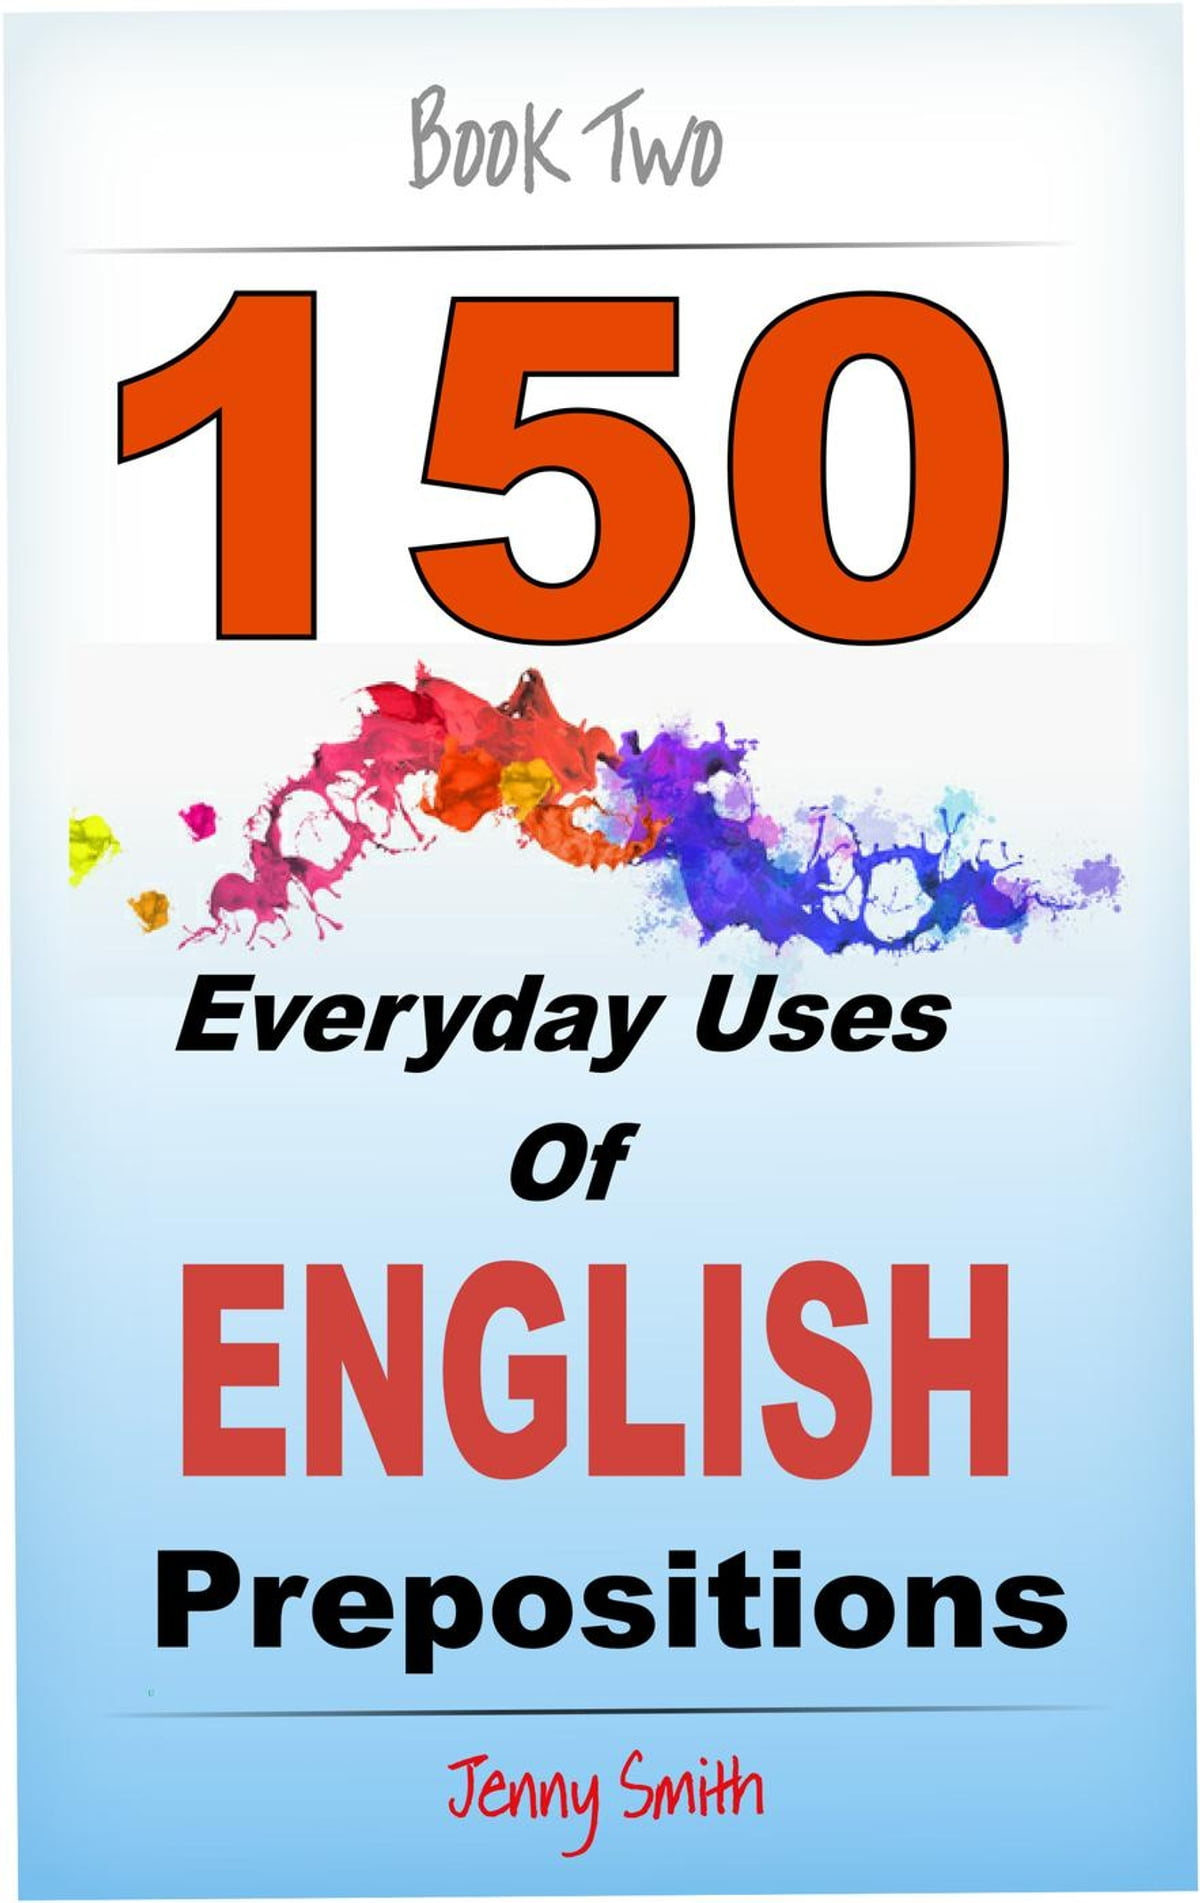 150 Everyday Uses of English Prepositions: Book Two: Intermediate Level  eBook by Jenny Smith - 9781519961914 | Rakuten Kobo